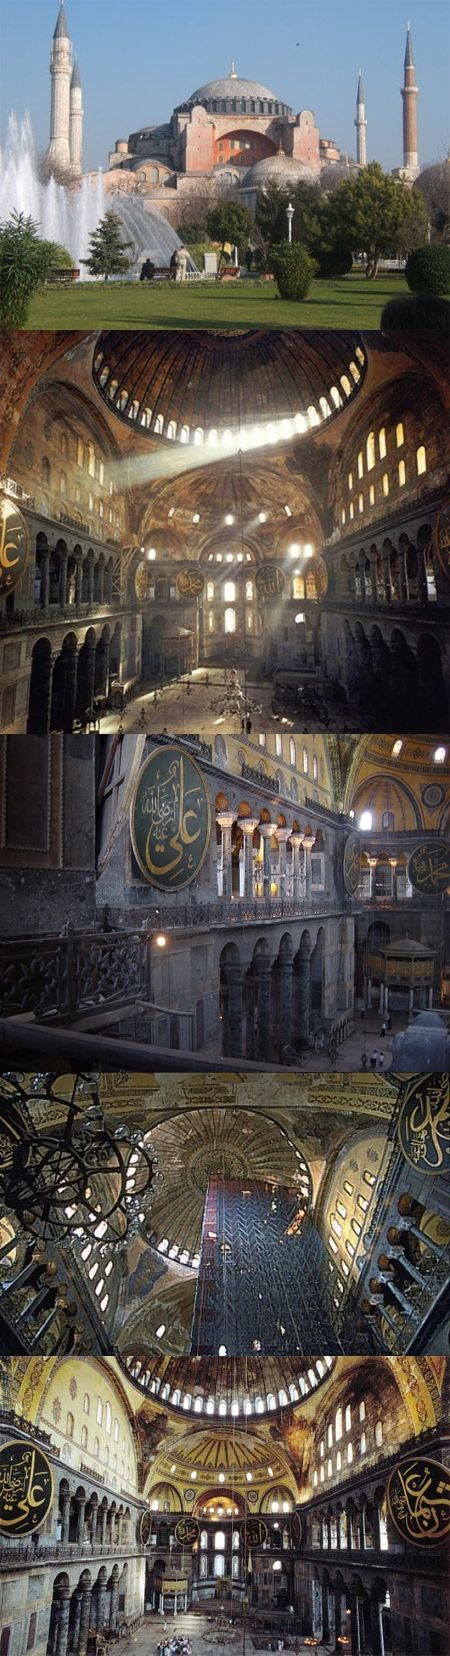 Hagia Sophia. Wanted to go here since the first time I laid eyes on this in AP art history.. Ah, Istanbul